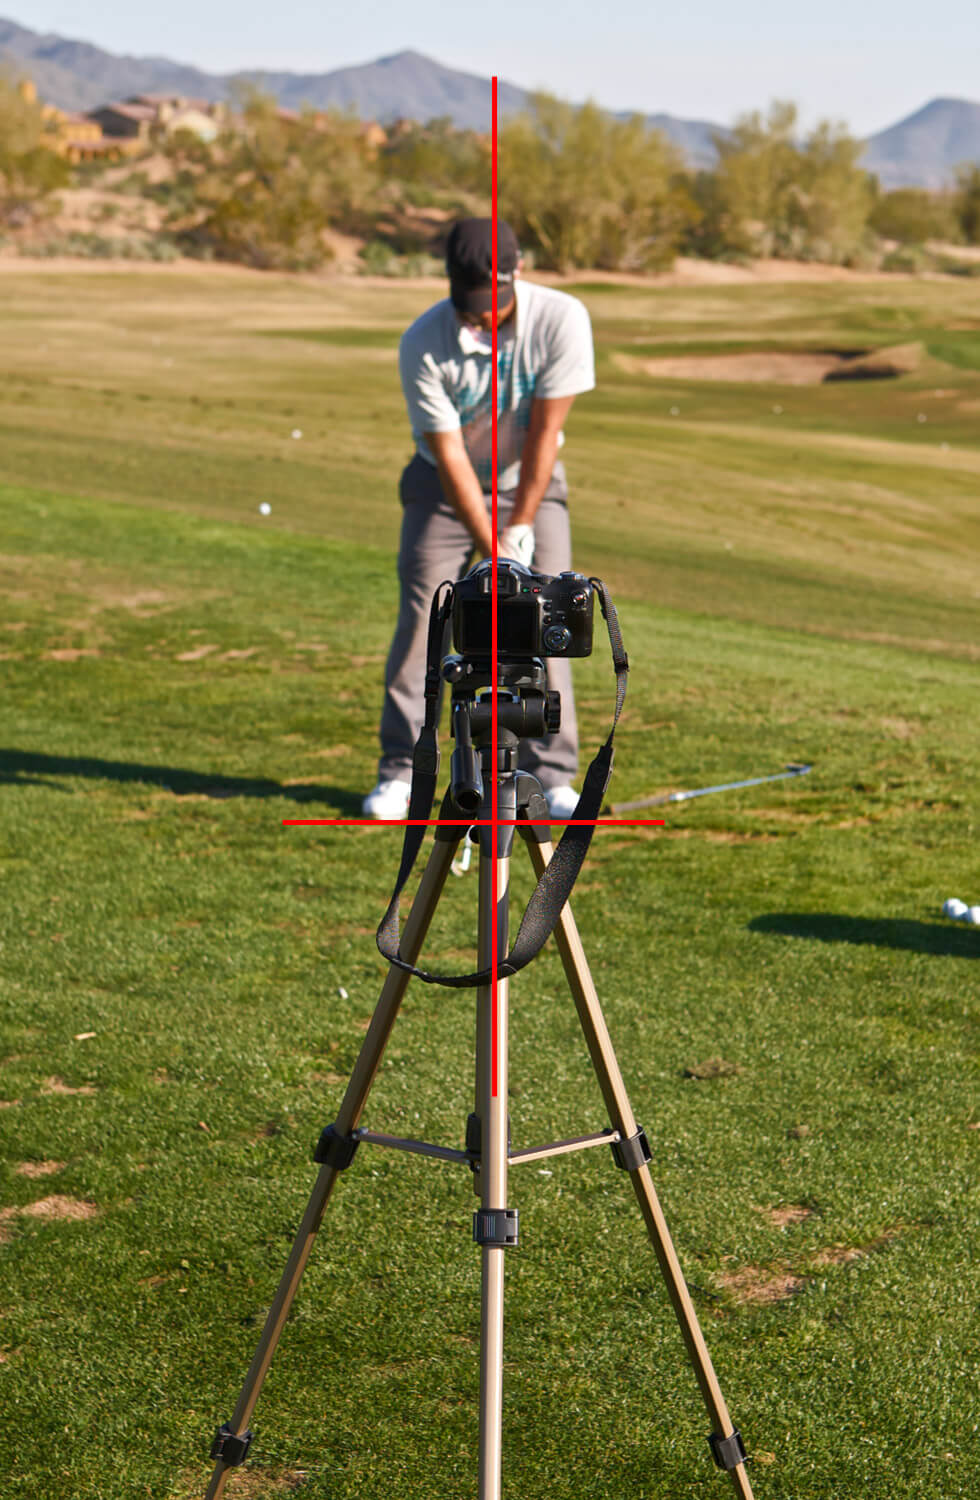 camera_angles_face_on, online lessons with Danford Golf